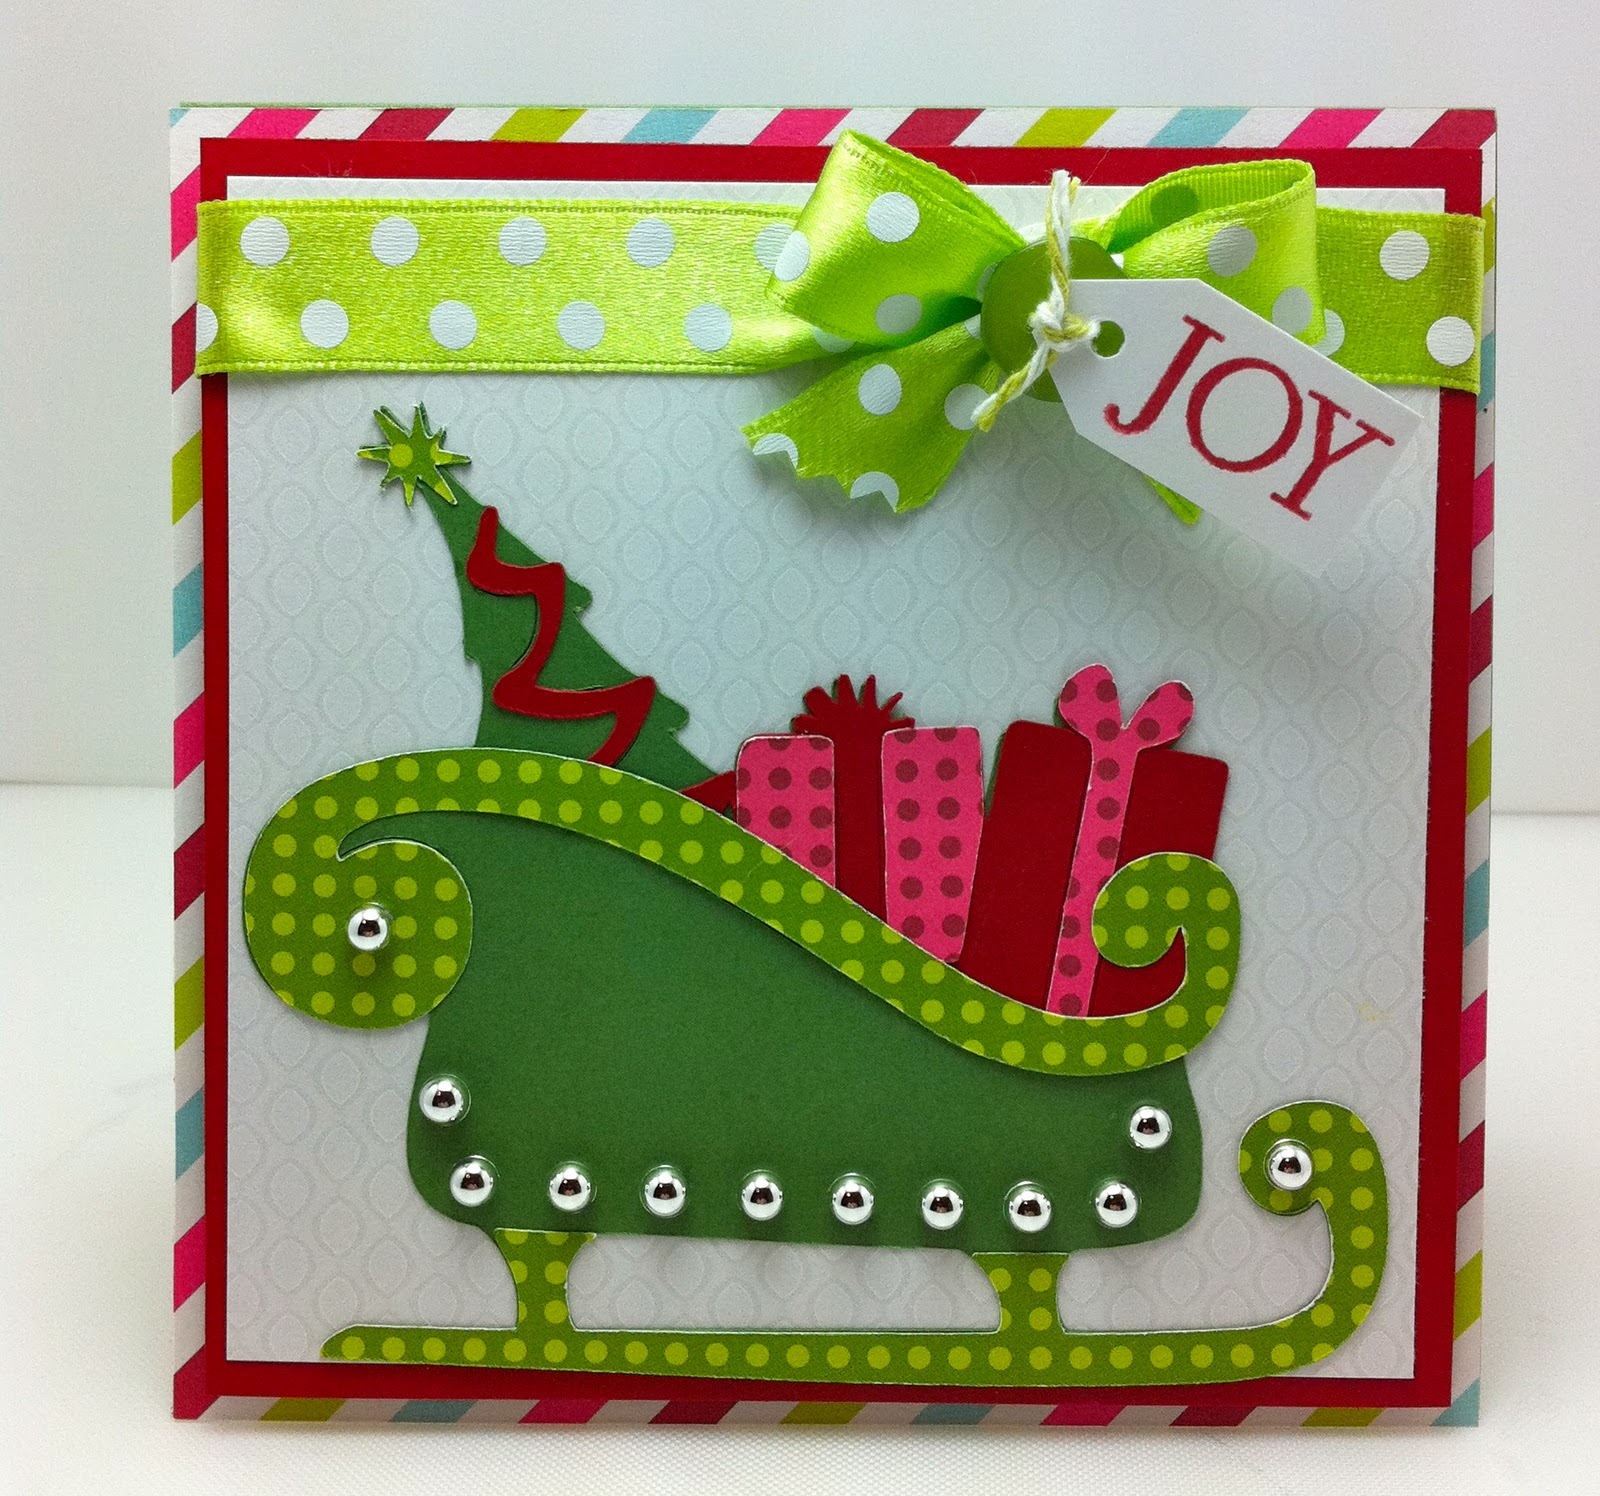 Obsessed With Scrapbooking Tis The Season Joy Ornament